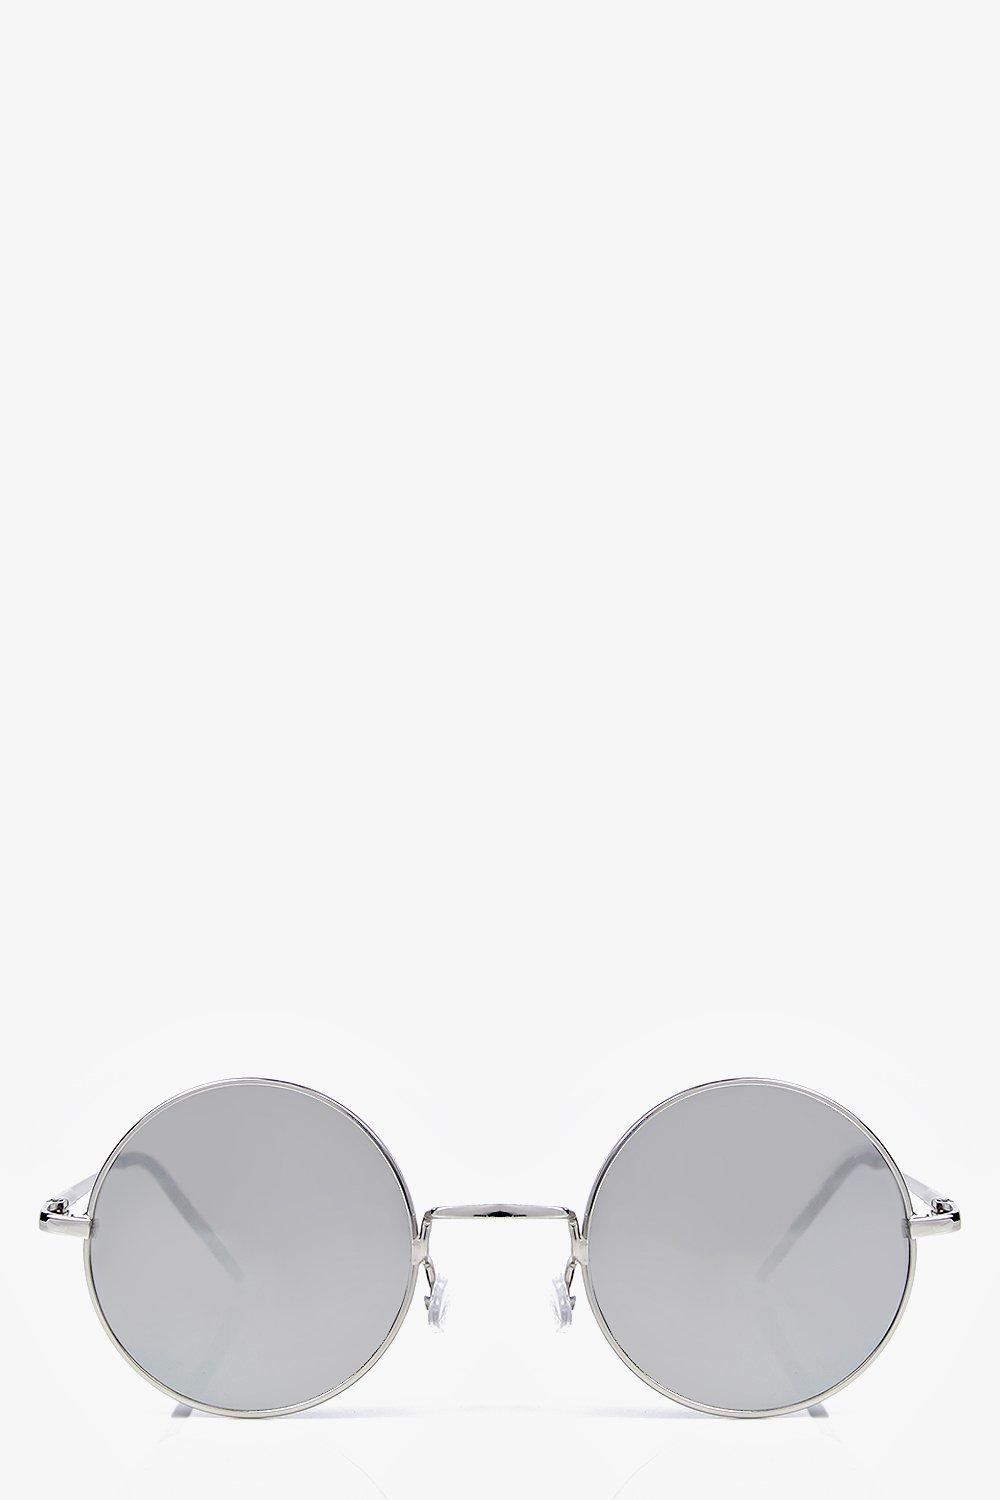 Sarah Round Mirrored Sunglasses